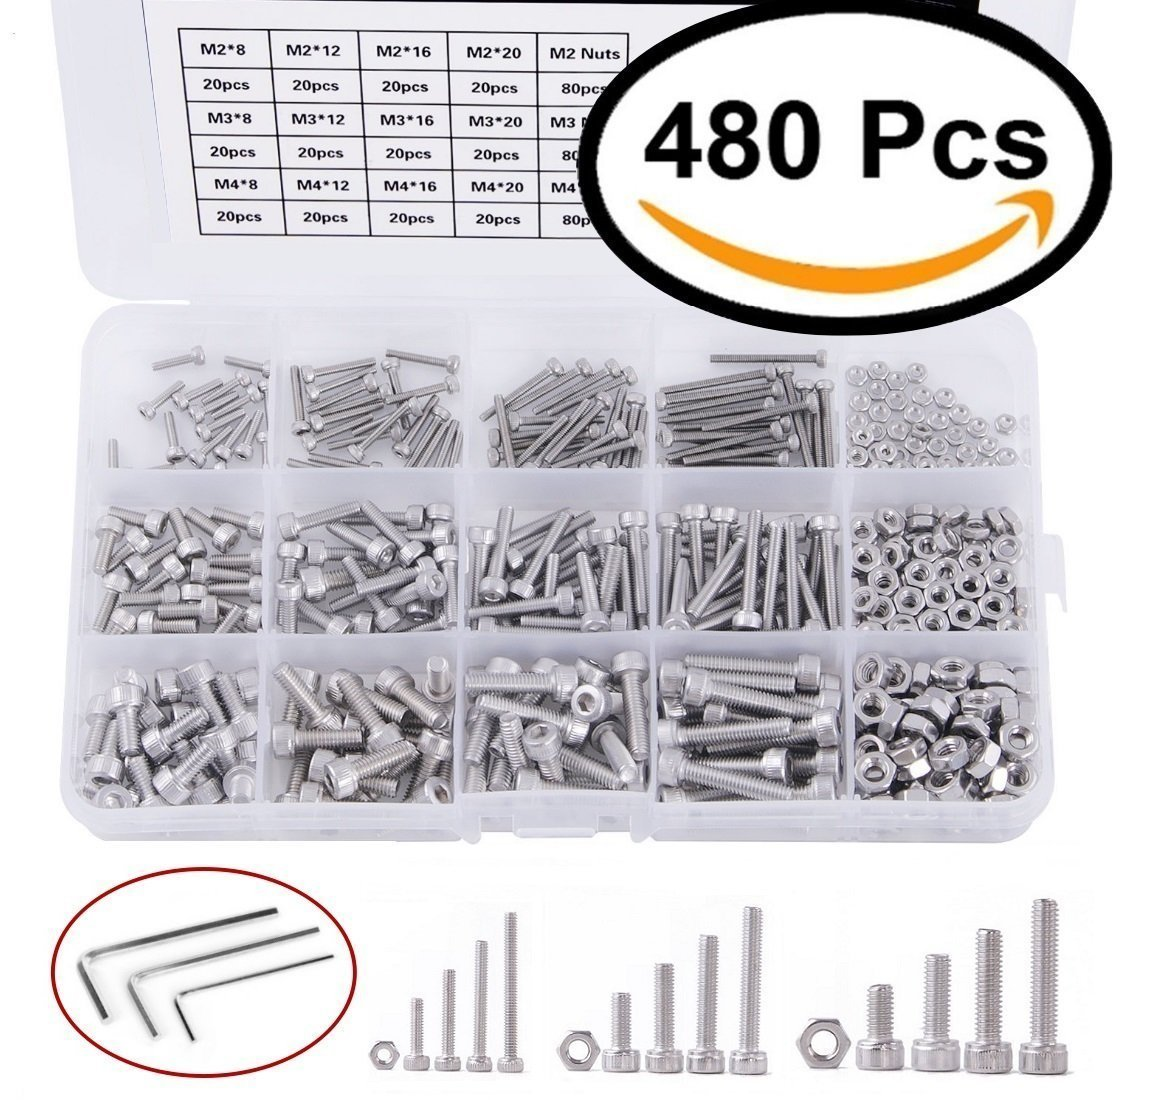 Screw and Nut Kit,Assorted Hex Socket Head Cap Bolts Nuts, M2/ M3/ M4, Stainless Steel, 8mm/ 12mm/ 16mm/ 20mm,Screw and Nuts, with Screwdriver (480 pcs)